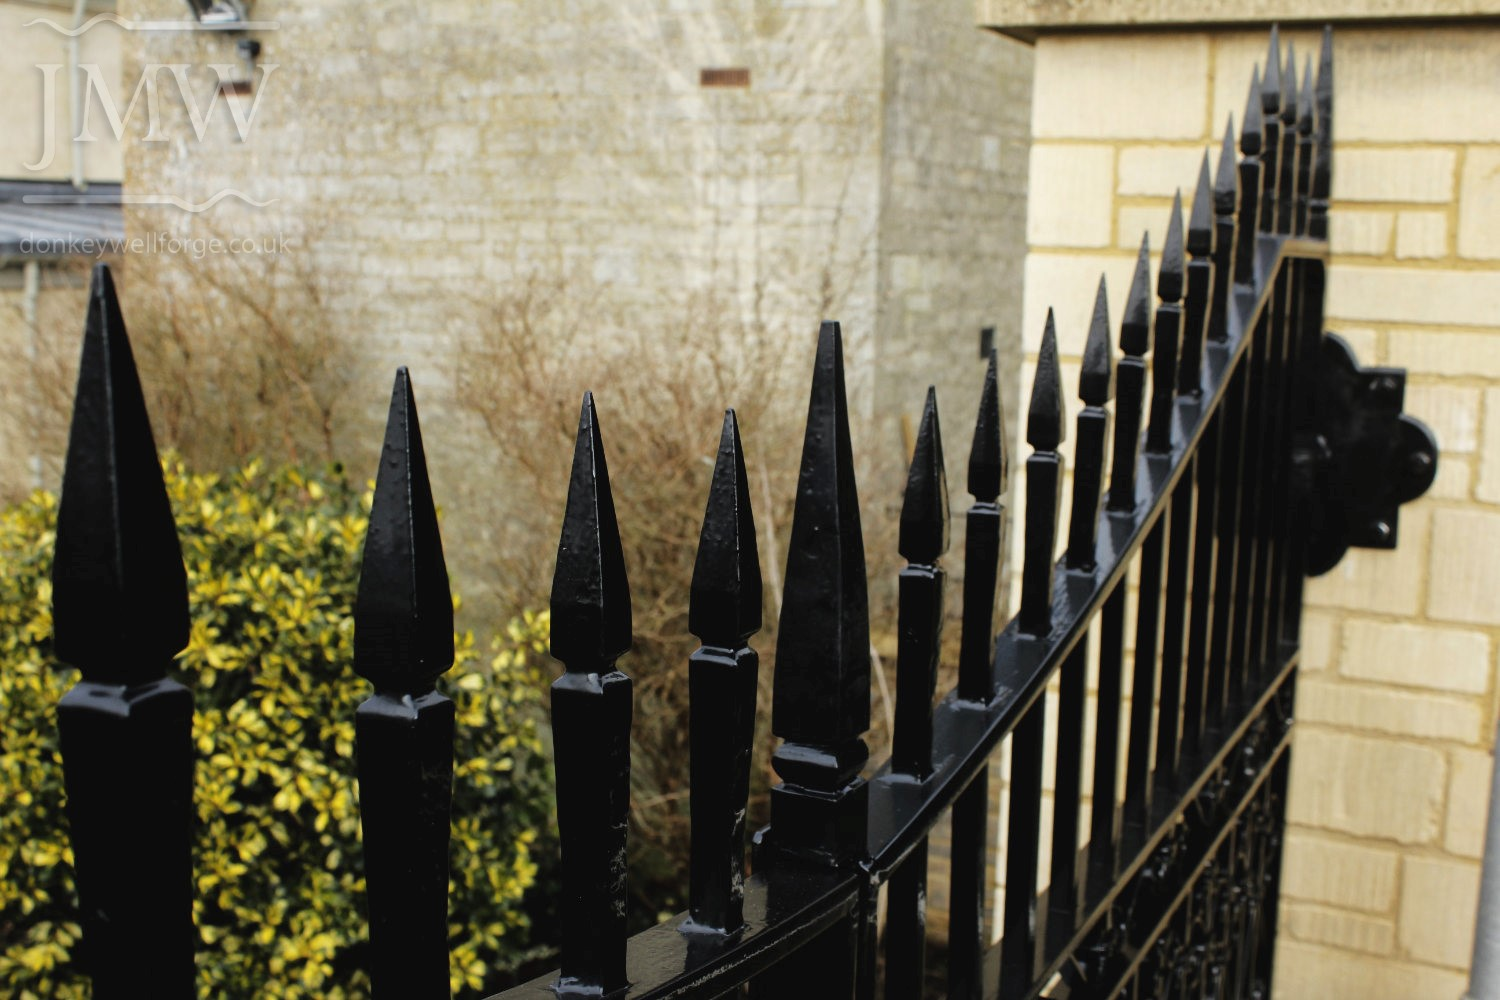 country-estate-garden-gates-scrolls-ironwork-forge-cotswolds-forged-top-spikes-donkeywell-forge